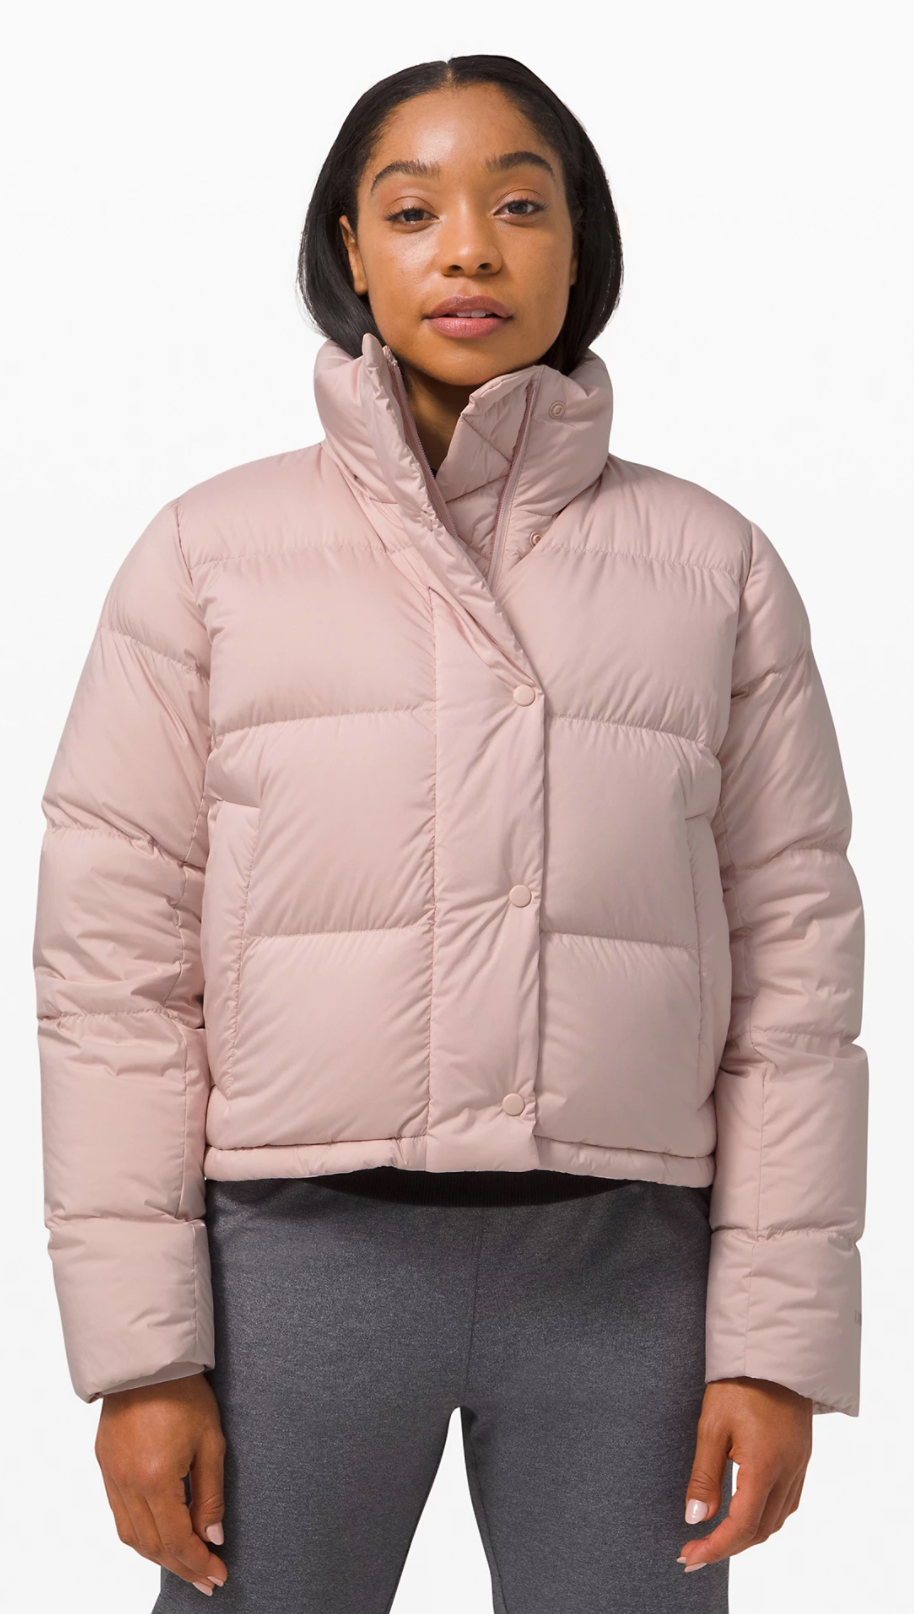 Wunder Puff Cropped Jacket in Pink Fawn (Photo via Lululemon Athletica)